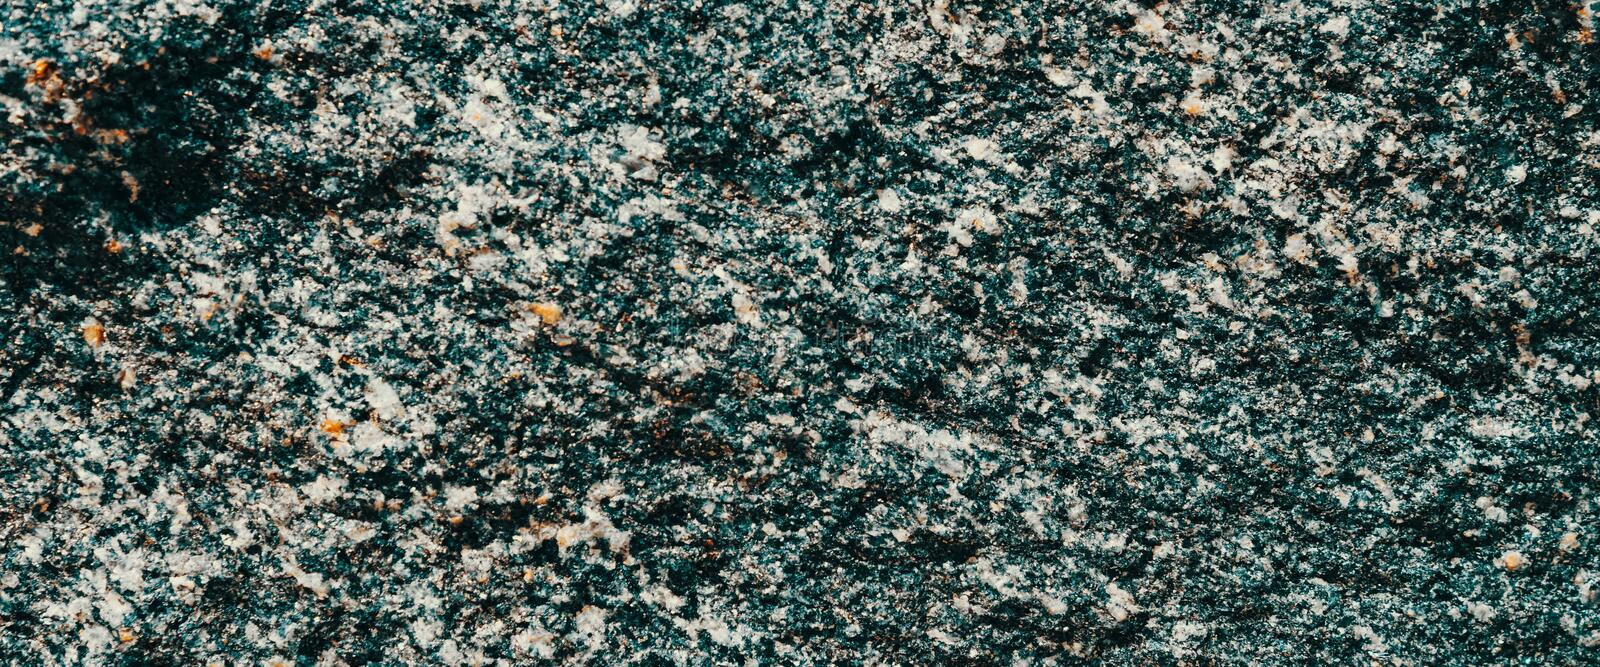 Granite texture, grey granite surface for background, material for decorative texture, interior design.  royalty free stock image